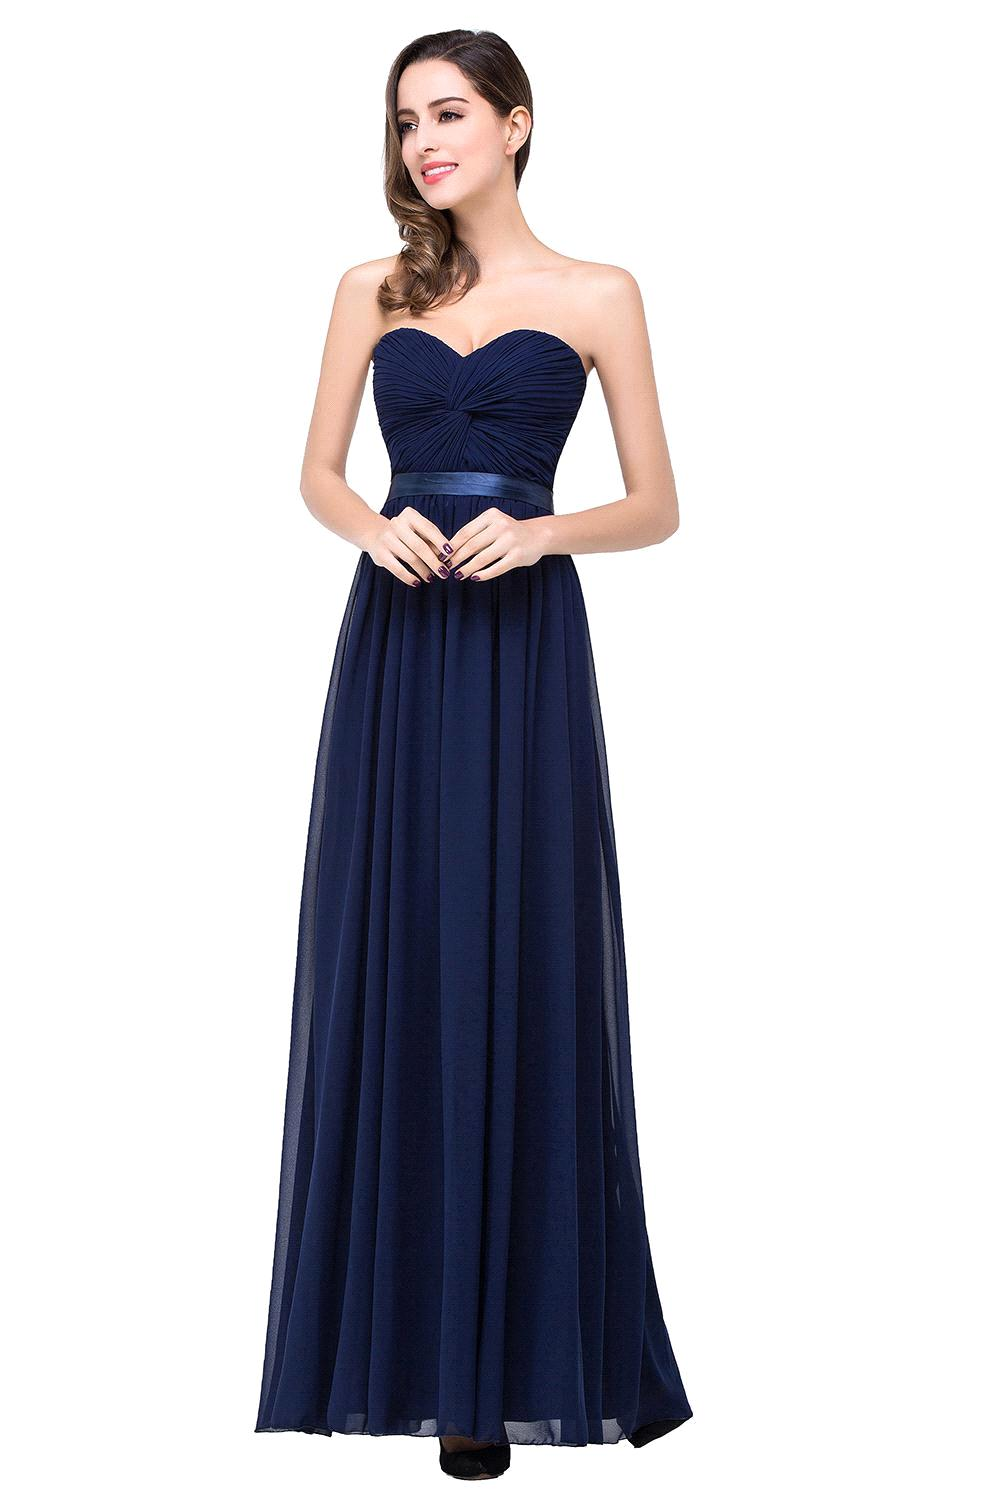 Online Get Cheap Navy Prom Dresses -Aliexpress.com ...